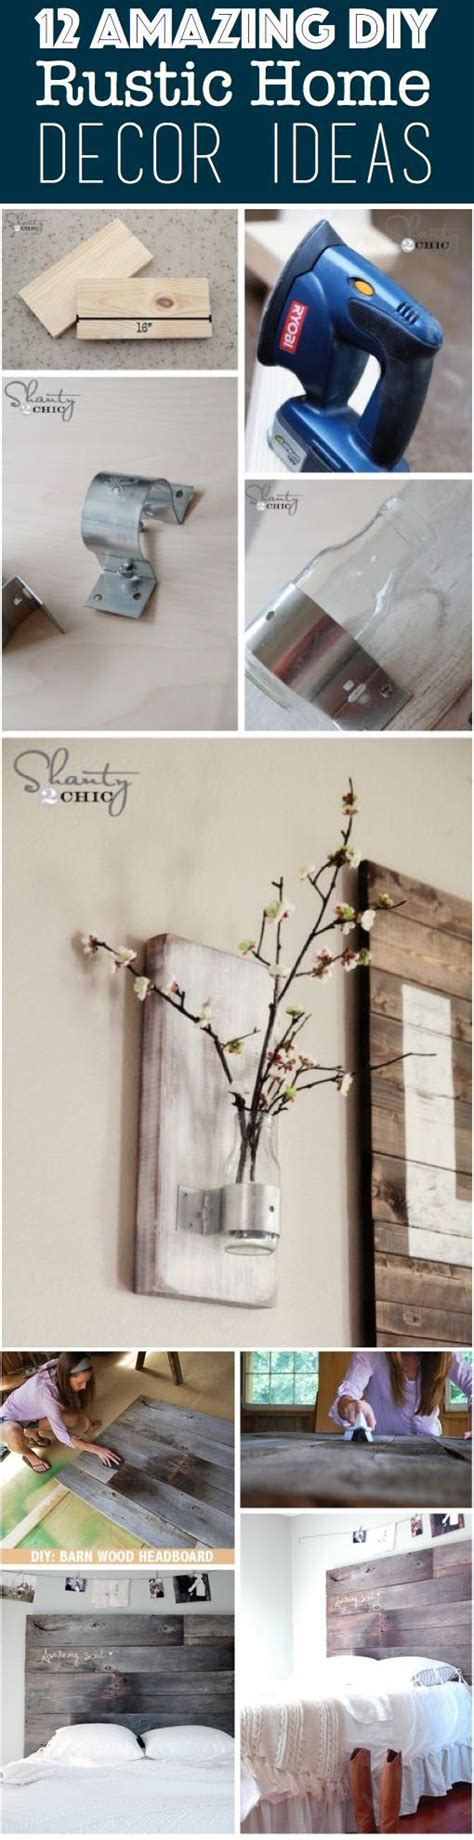 Diy Rustic Home Decor Ideas by 12 Amazing Diy Rustic Home Decor Ideas Culture Scribe